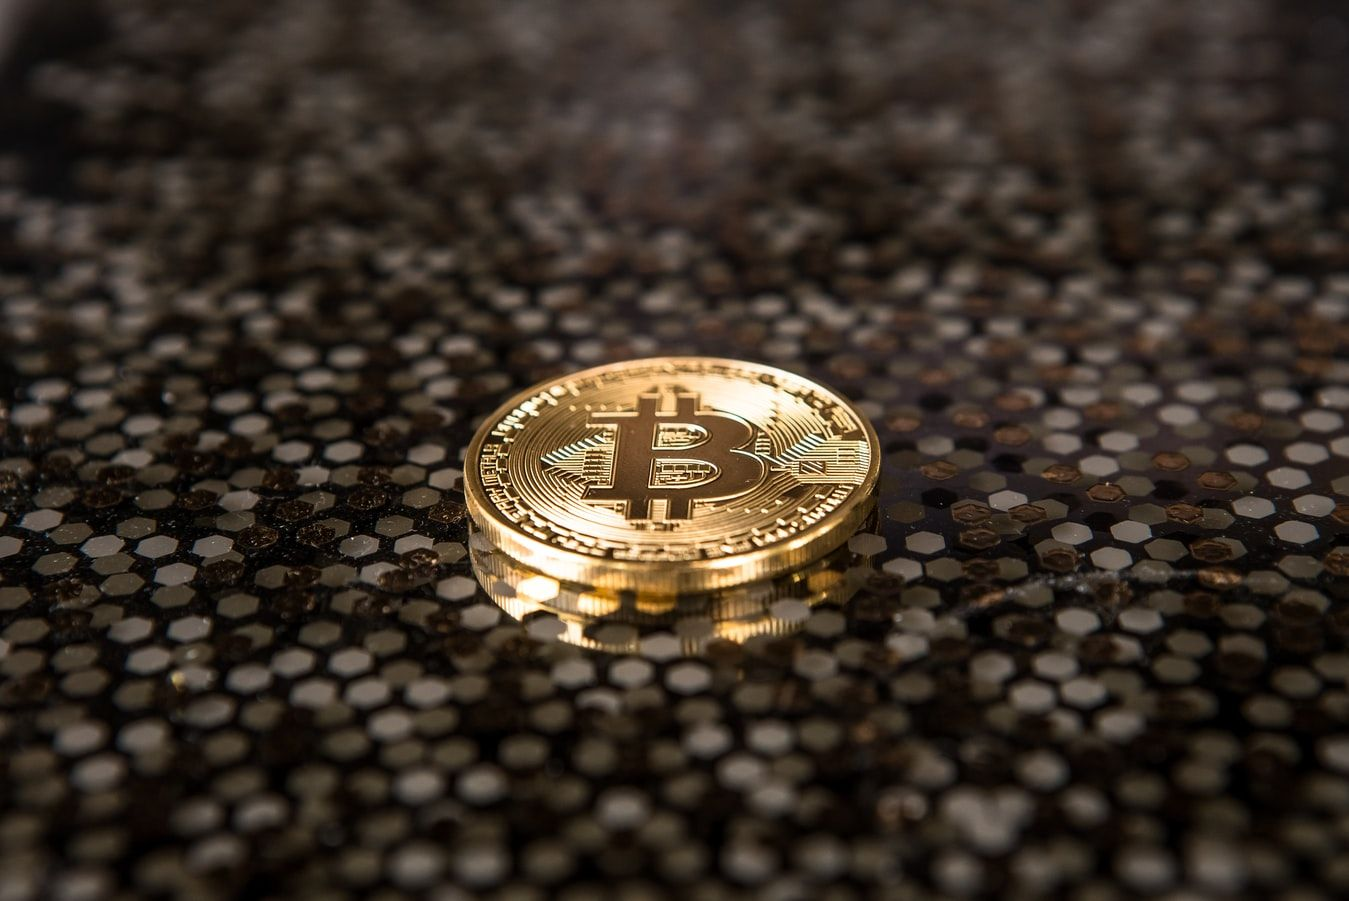 /the-bitcoin-price-in-the-long-run-part-1-the-role-of-social-mood-9wi3w9c feature image